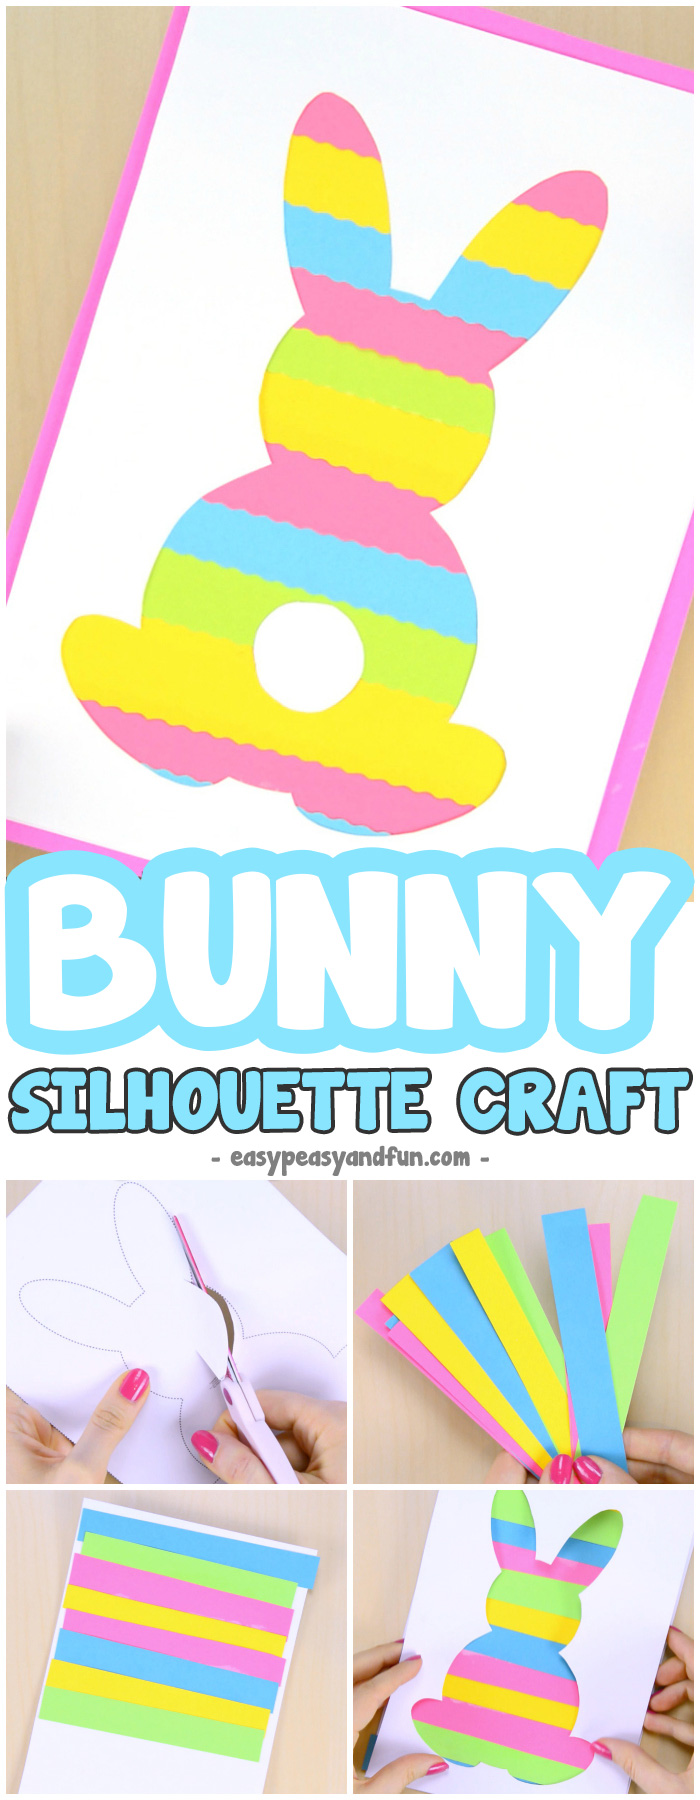 Easter Silhouette Printable Craft For Kids To Make Eastercrafts Craftsforkids Activitiesforkids